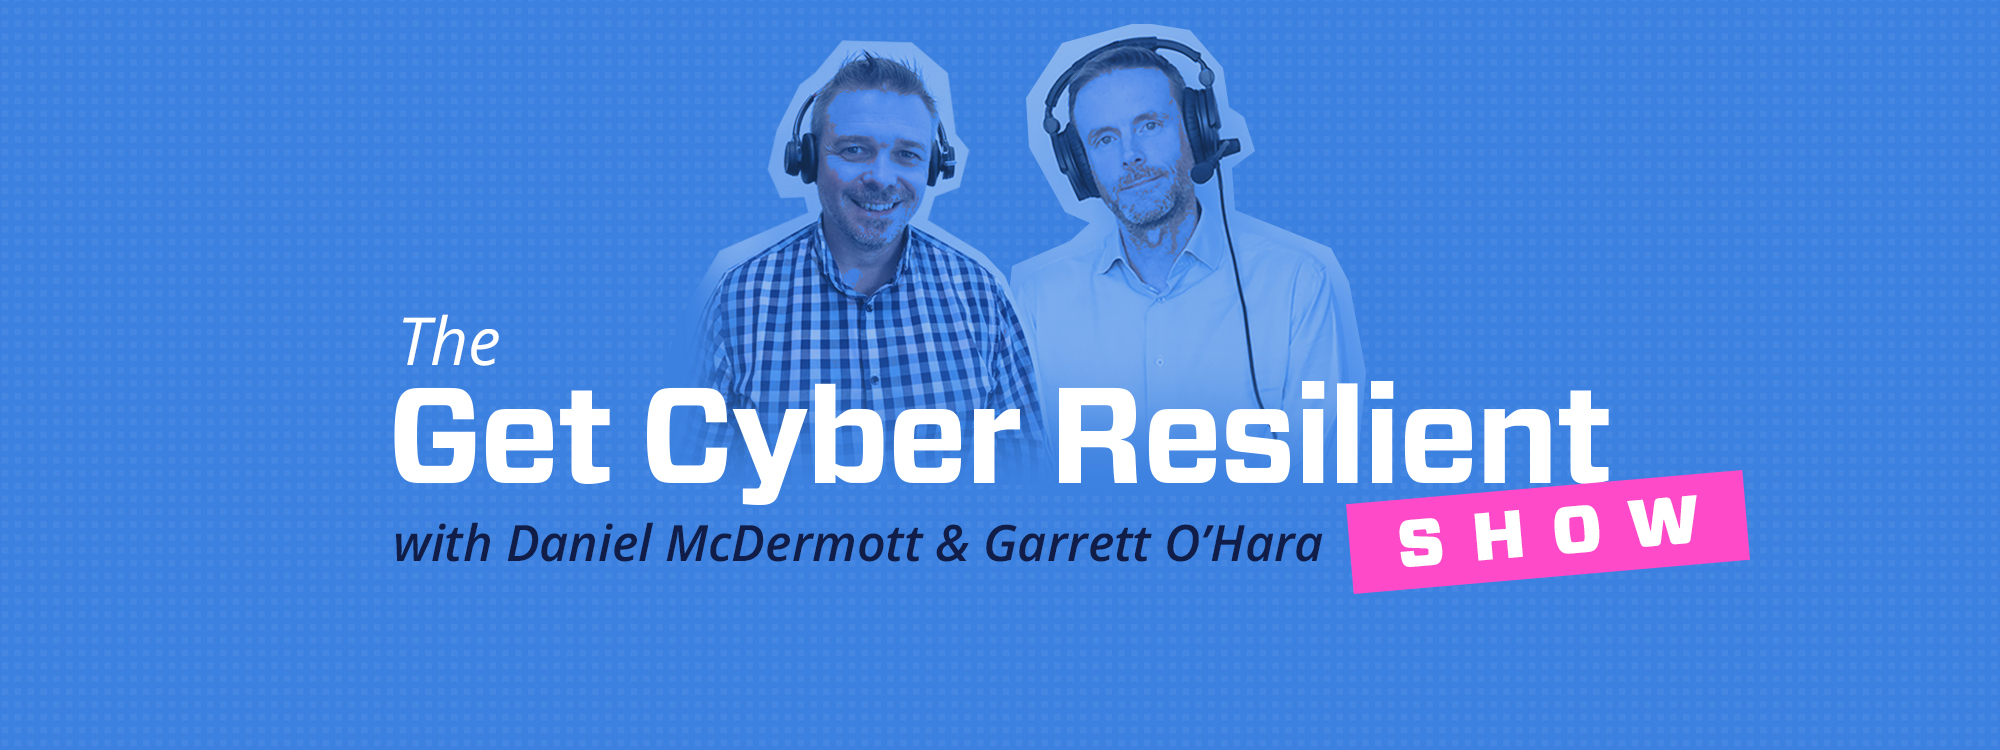 The Get Cyber Resilient Show Episode #7